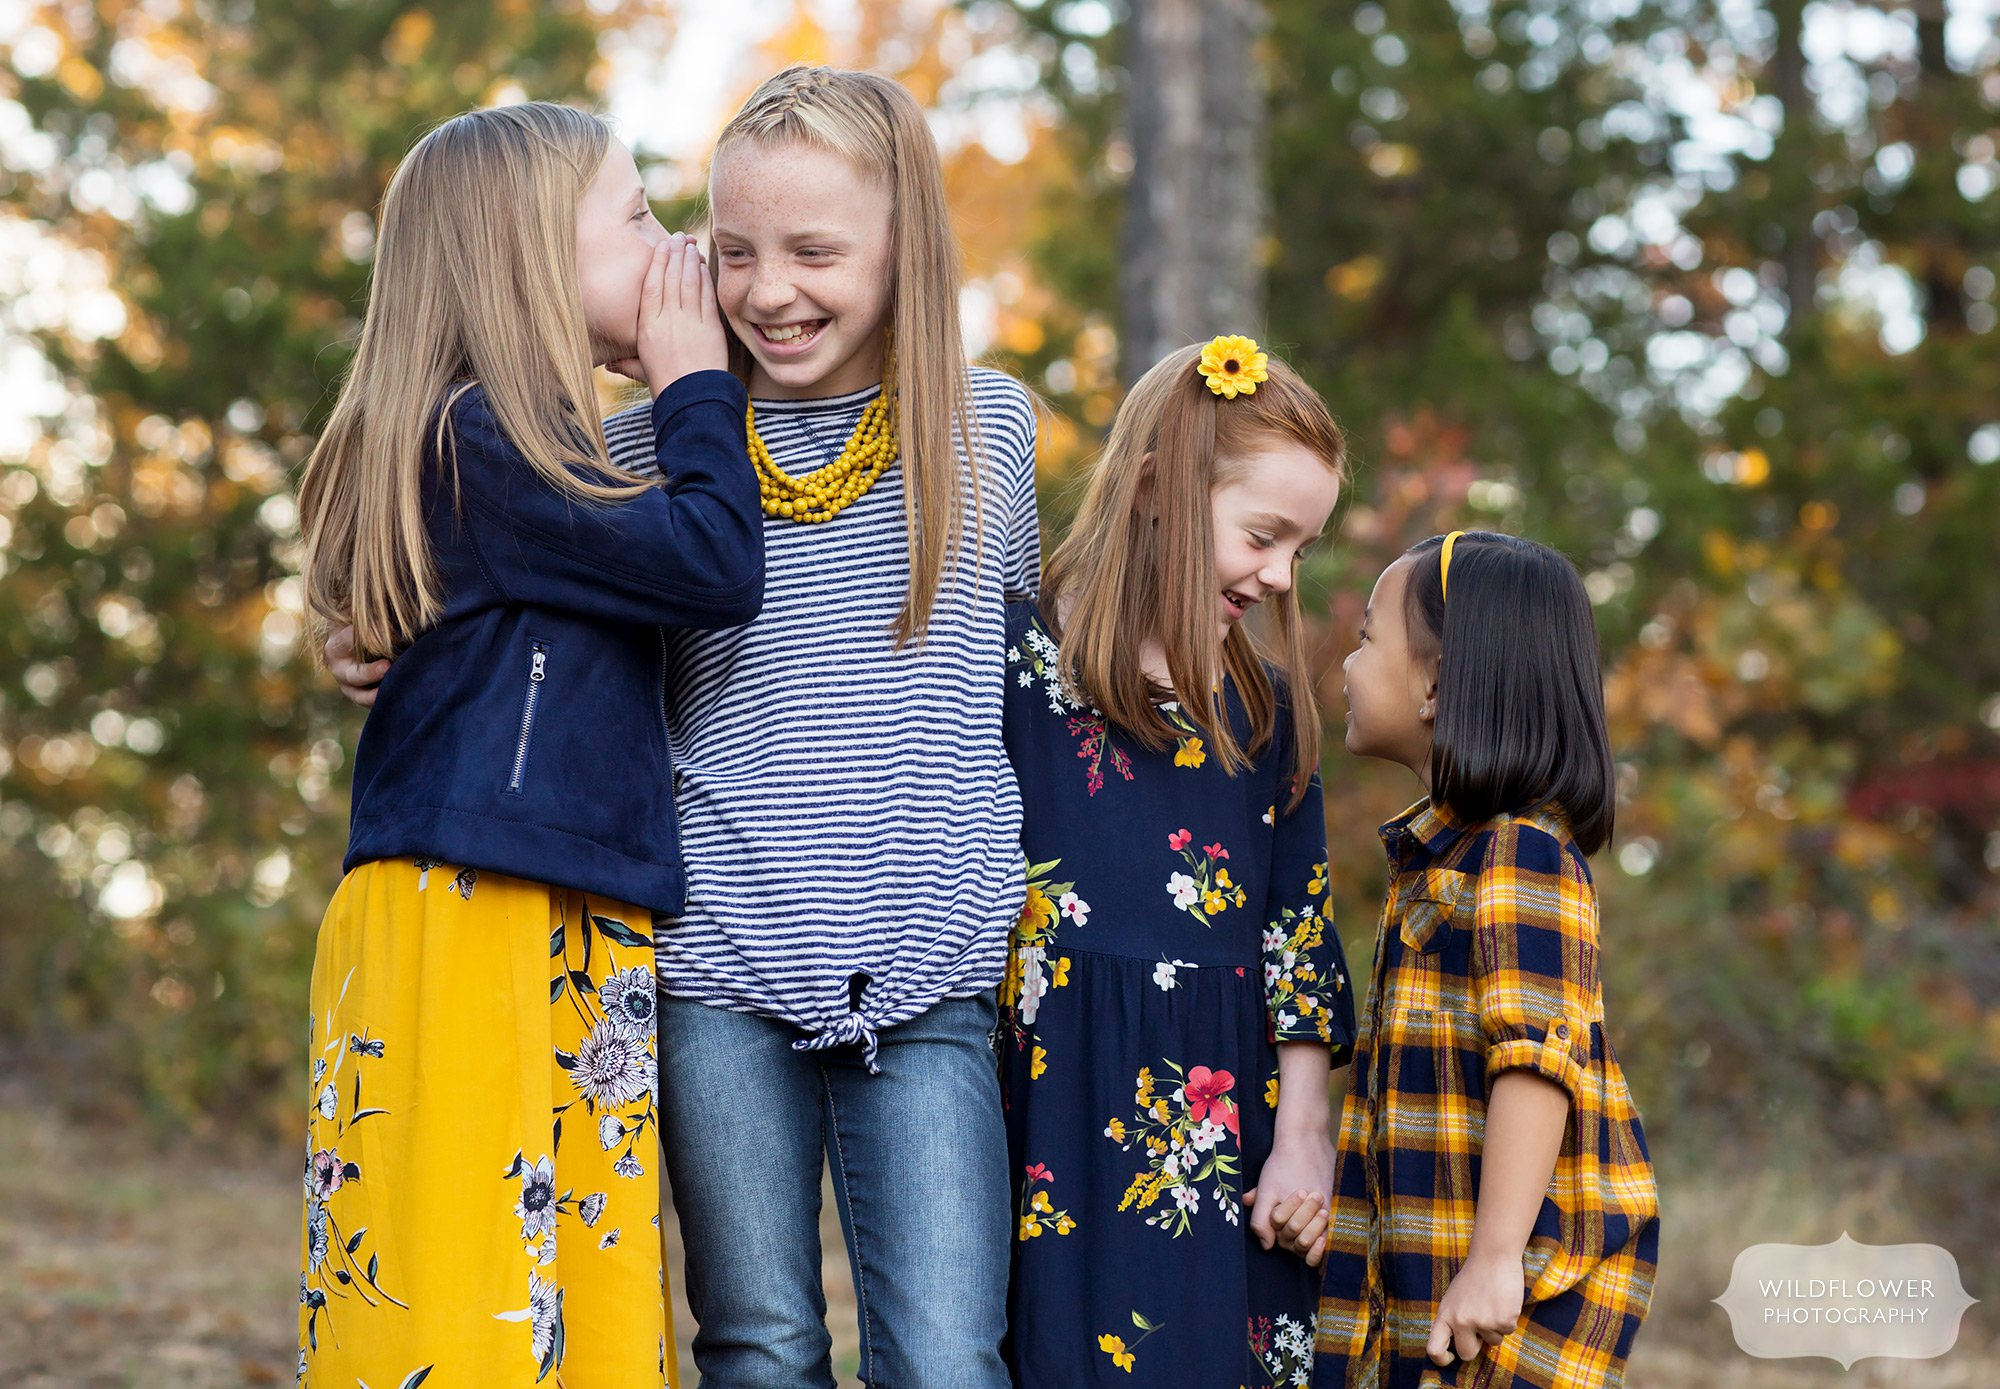 Girls tell secrets during this natural family photography session in Columbia.